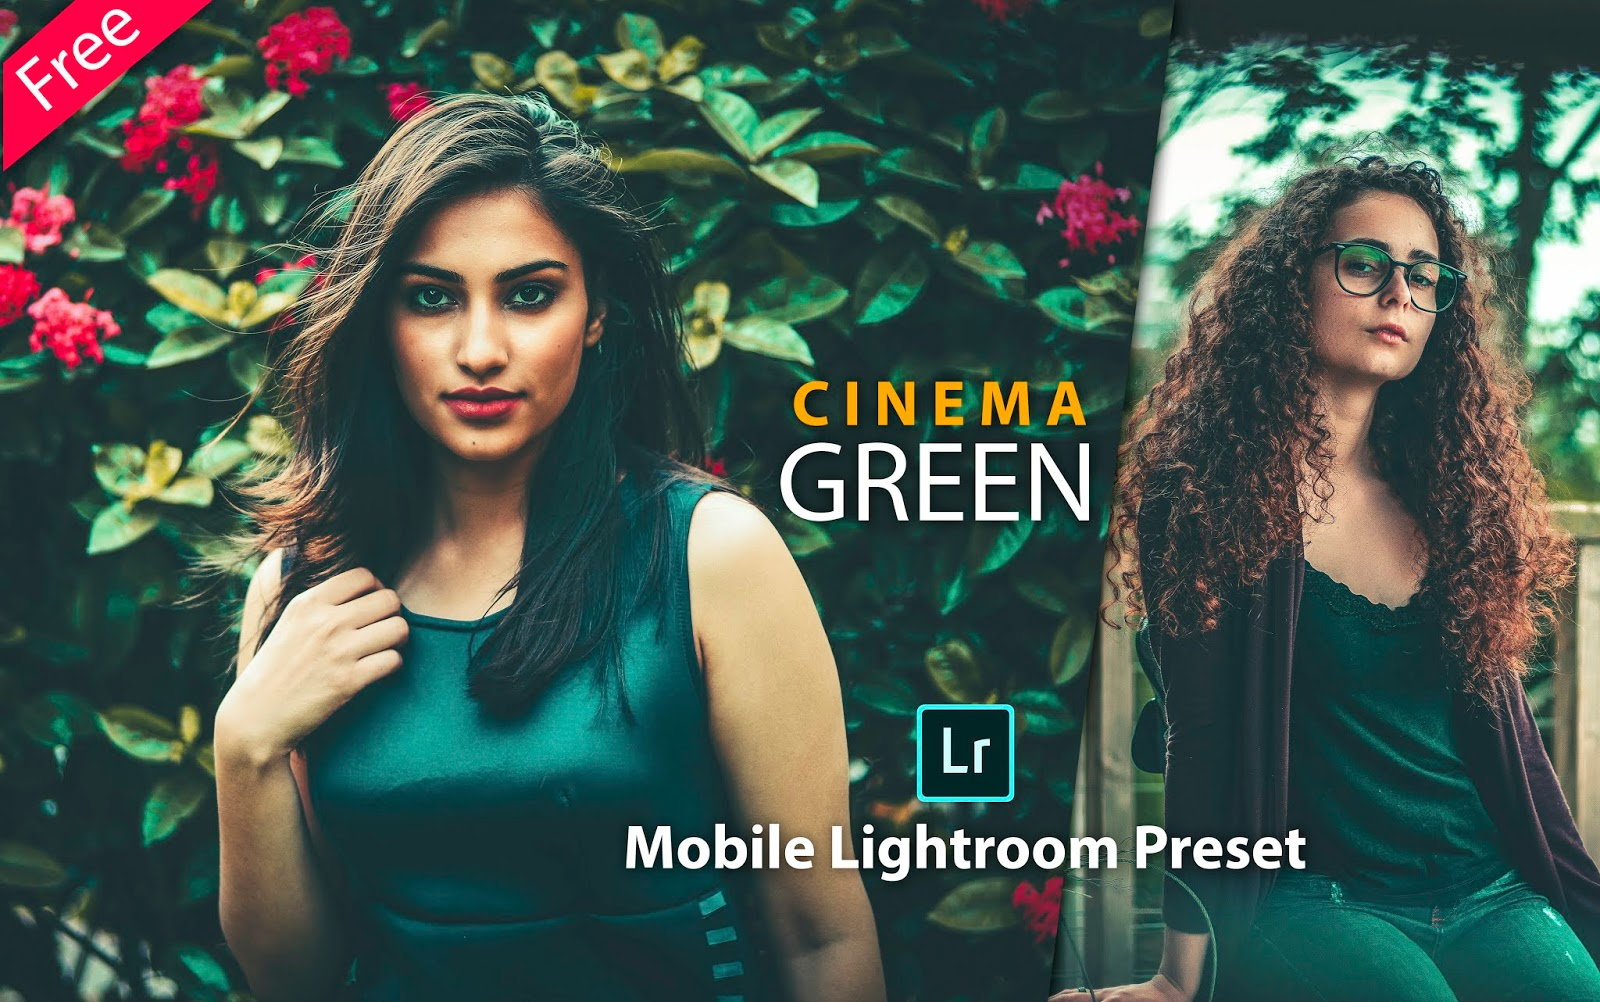 Download Cinema Green Mobile Lightroom Preset for Free | How to Edit Your Photos with Cinematic Green Effect in Mobile Lightroom App